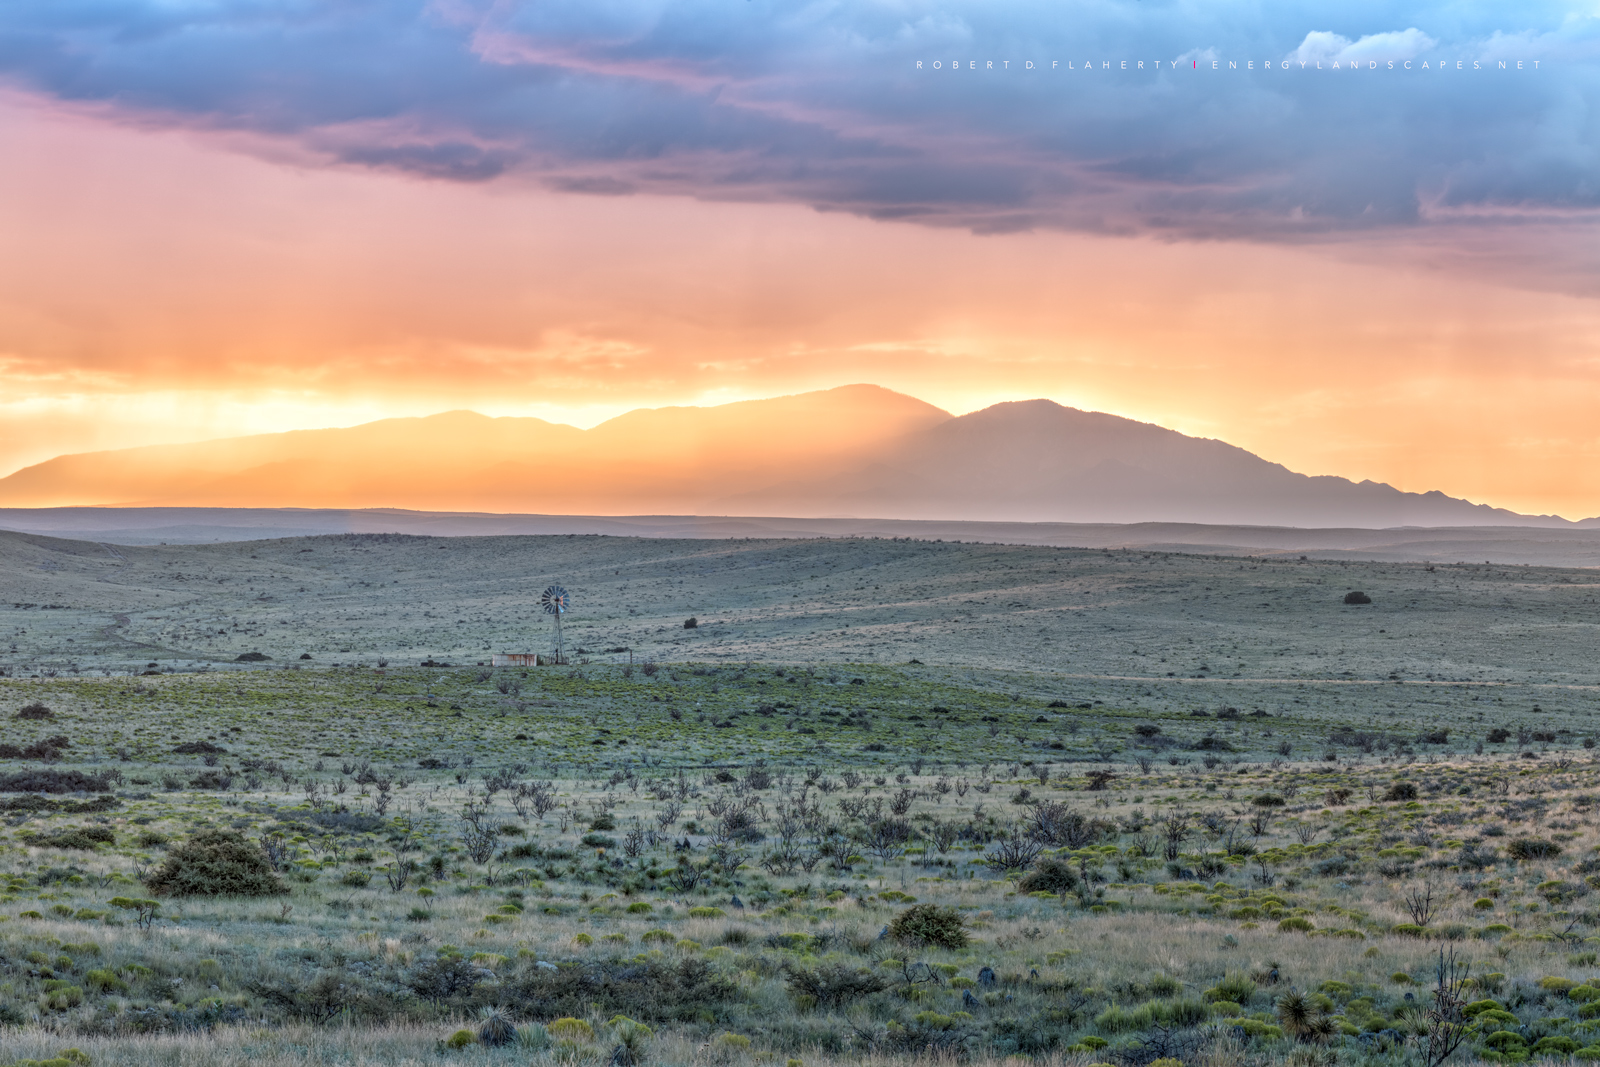 Lincoln County New Mexico, Border Hill, Border Hill windmill, windmill, Monsoon, New Mexico, Ruidoso, New Mexico fine art photography, sunset, Capitan Mountains, Roswell New Mexico, photo